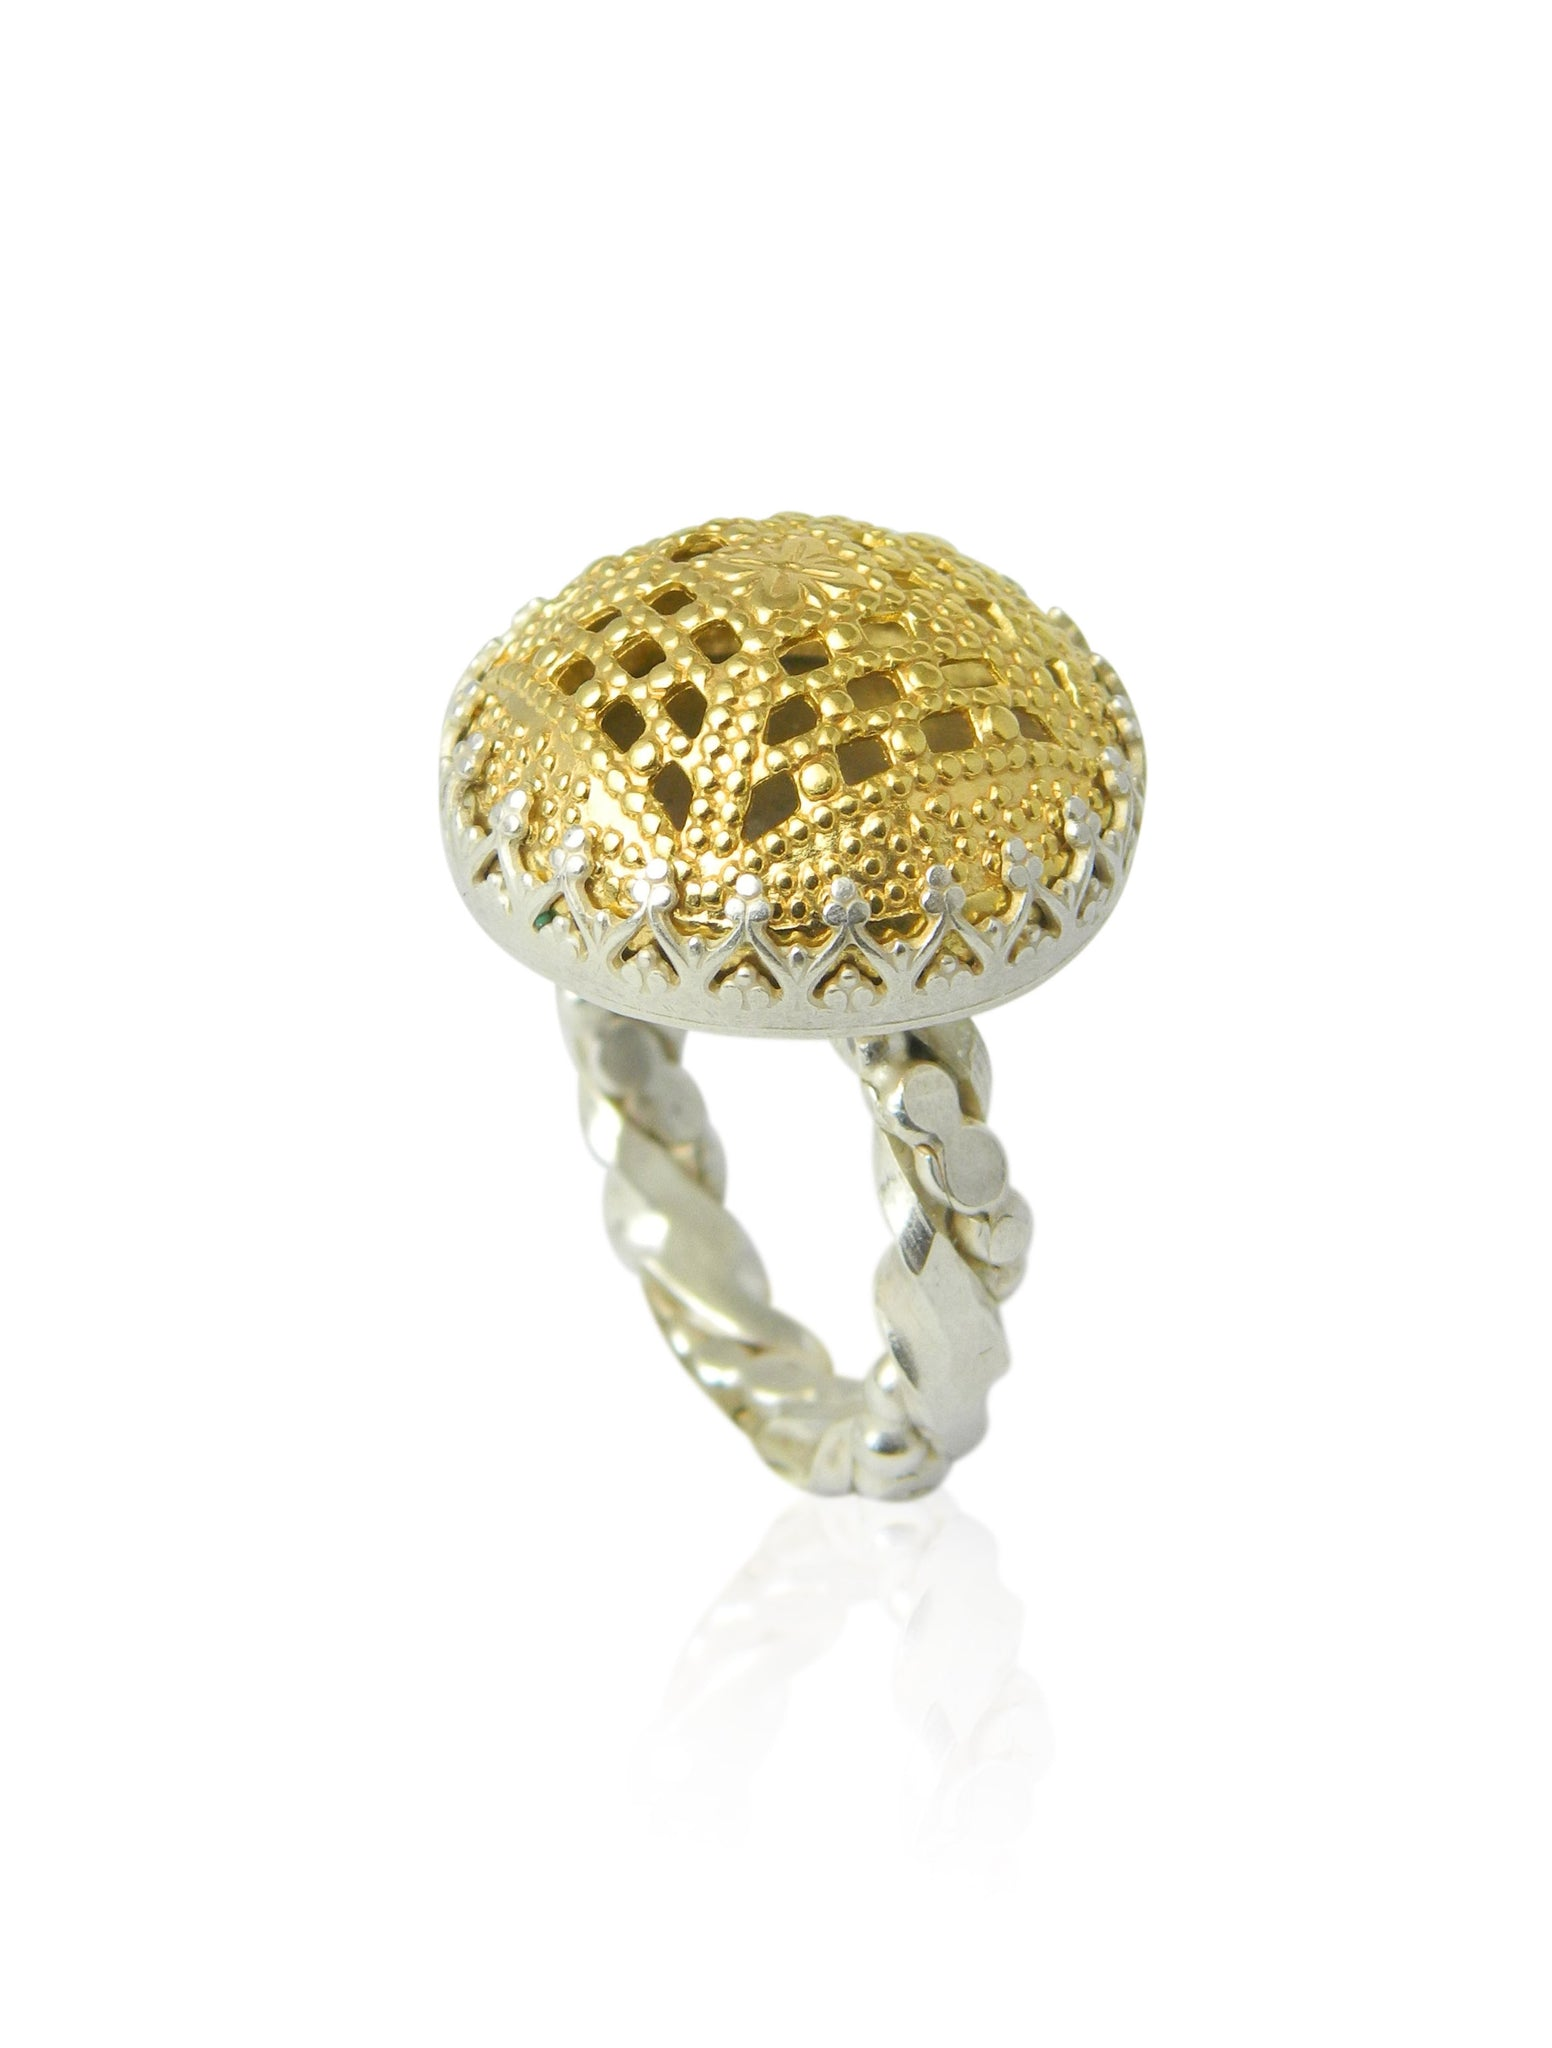 Large domed filigree ring